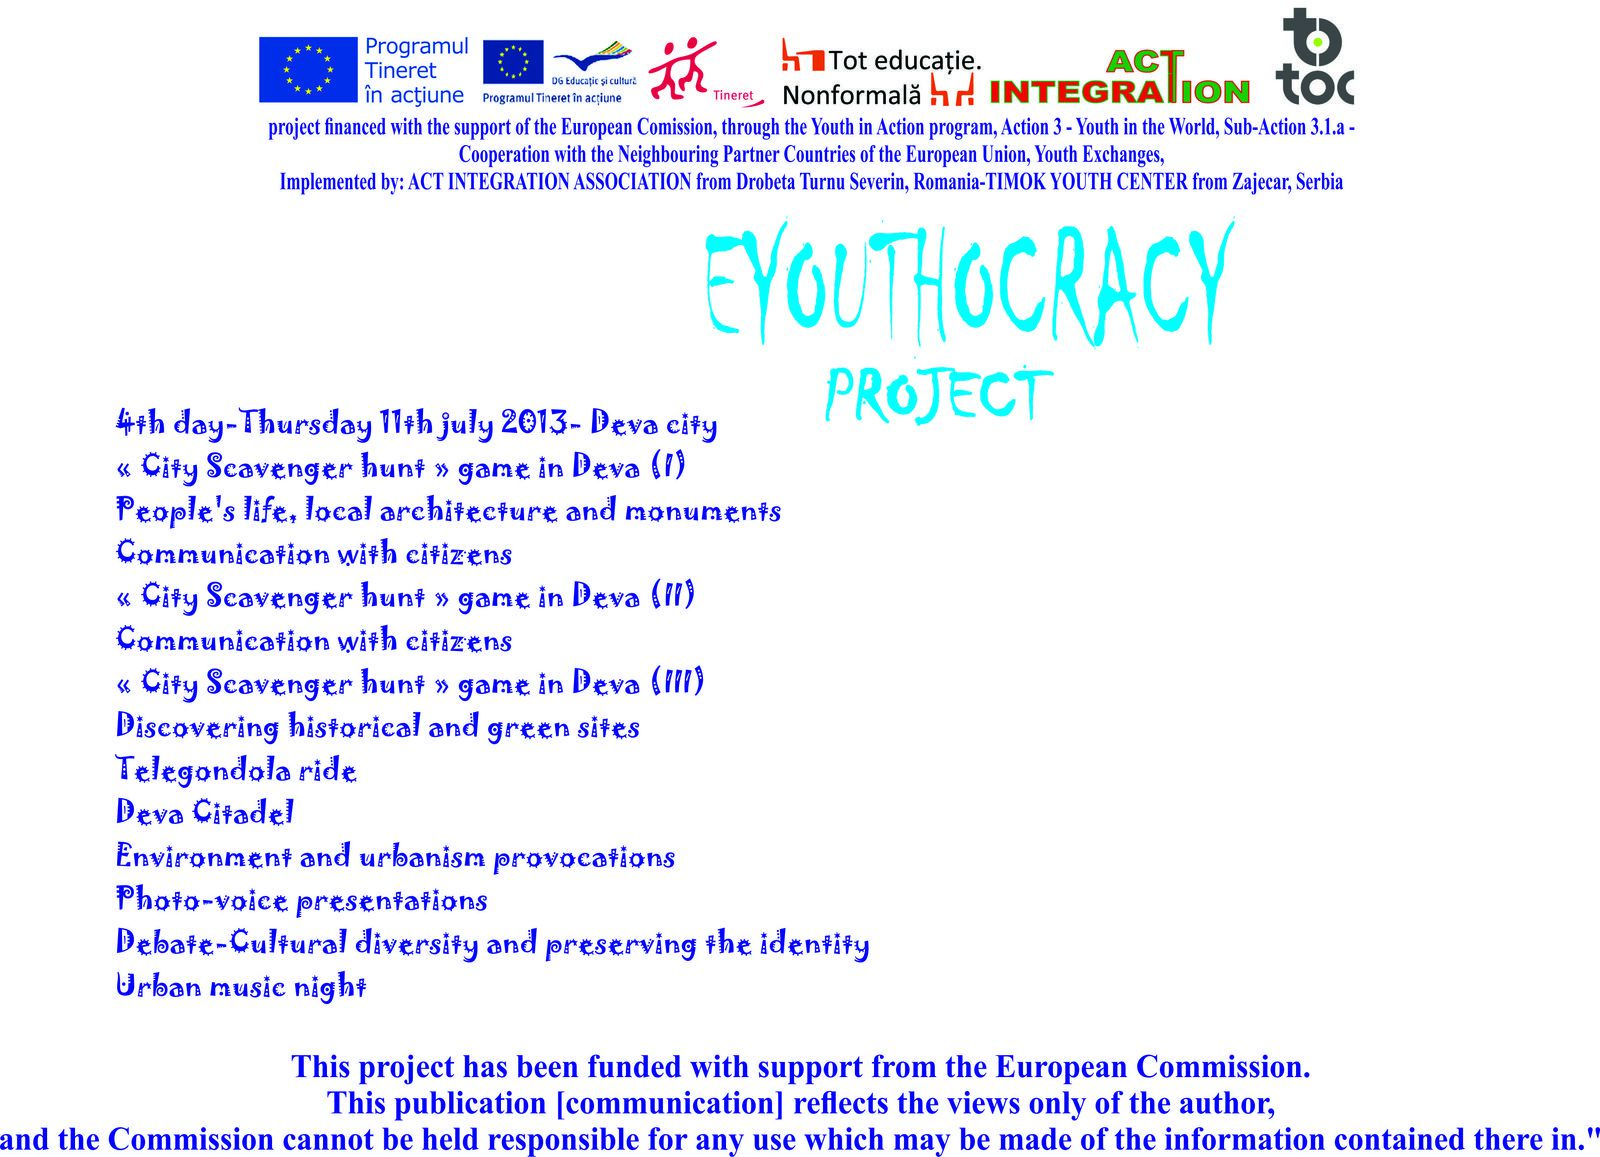 Eyouthocracy Youth Exchange- 4th Day-11th july 2013-in Deva